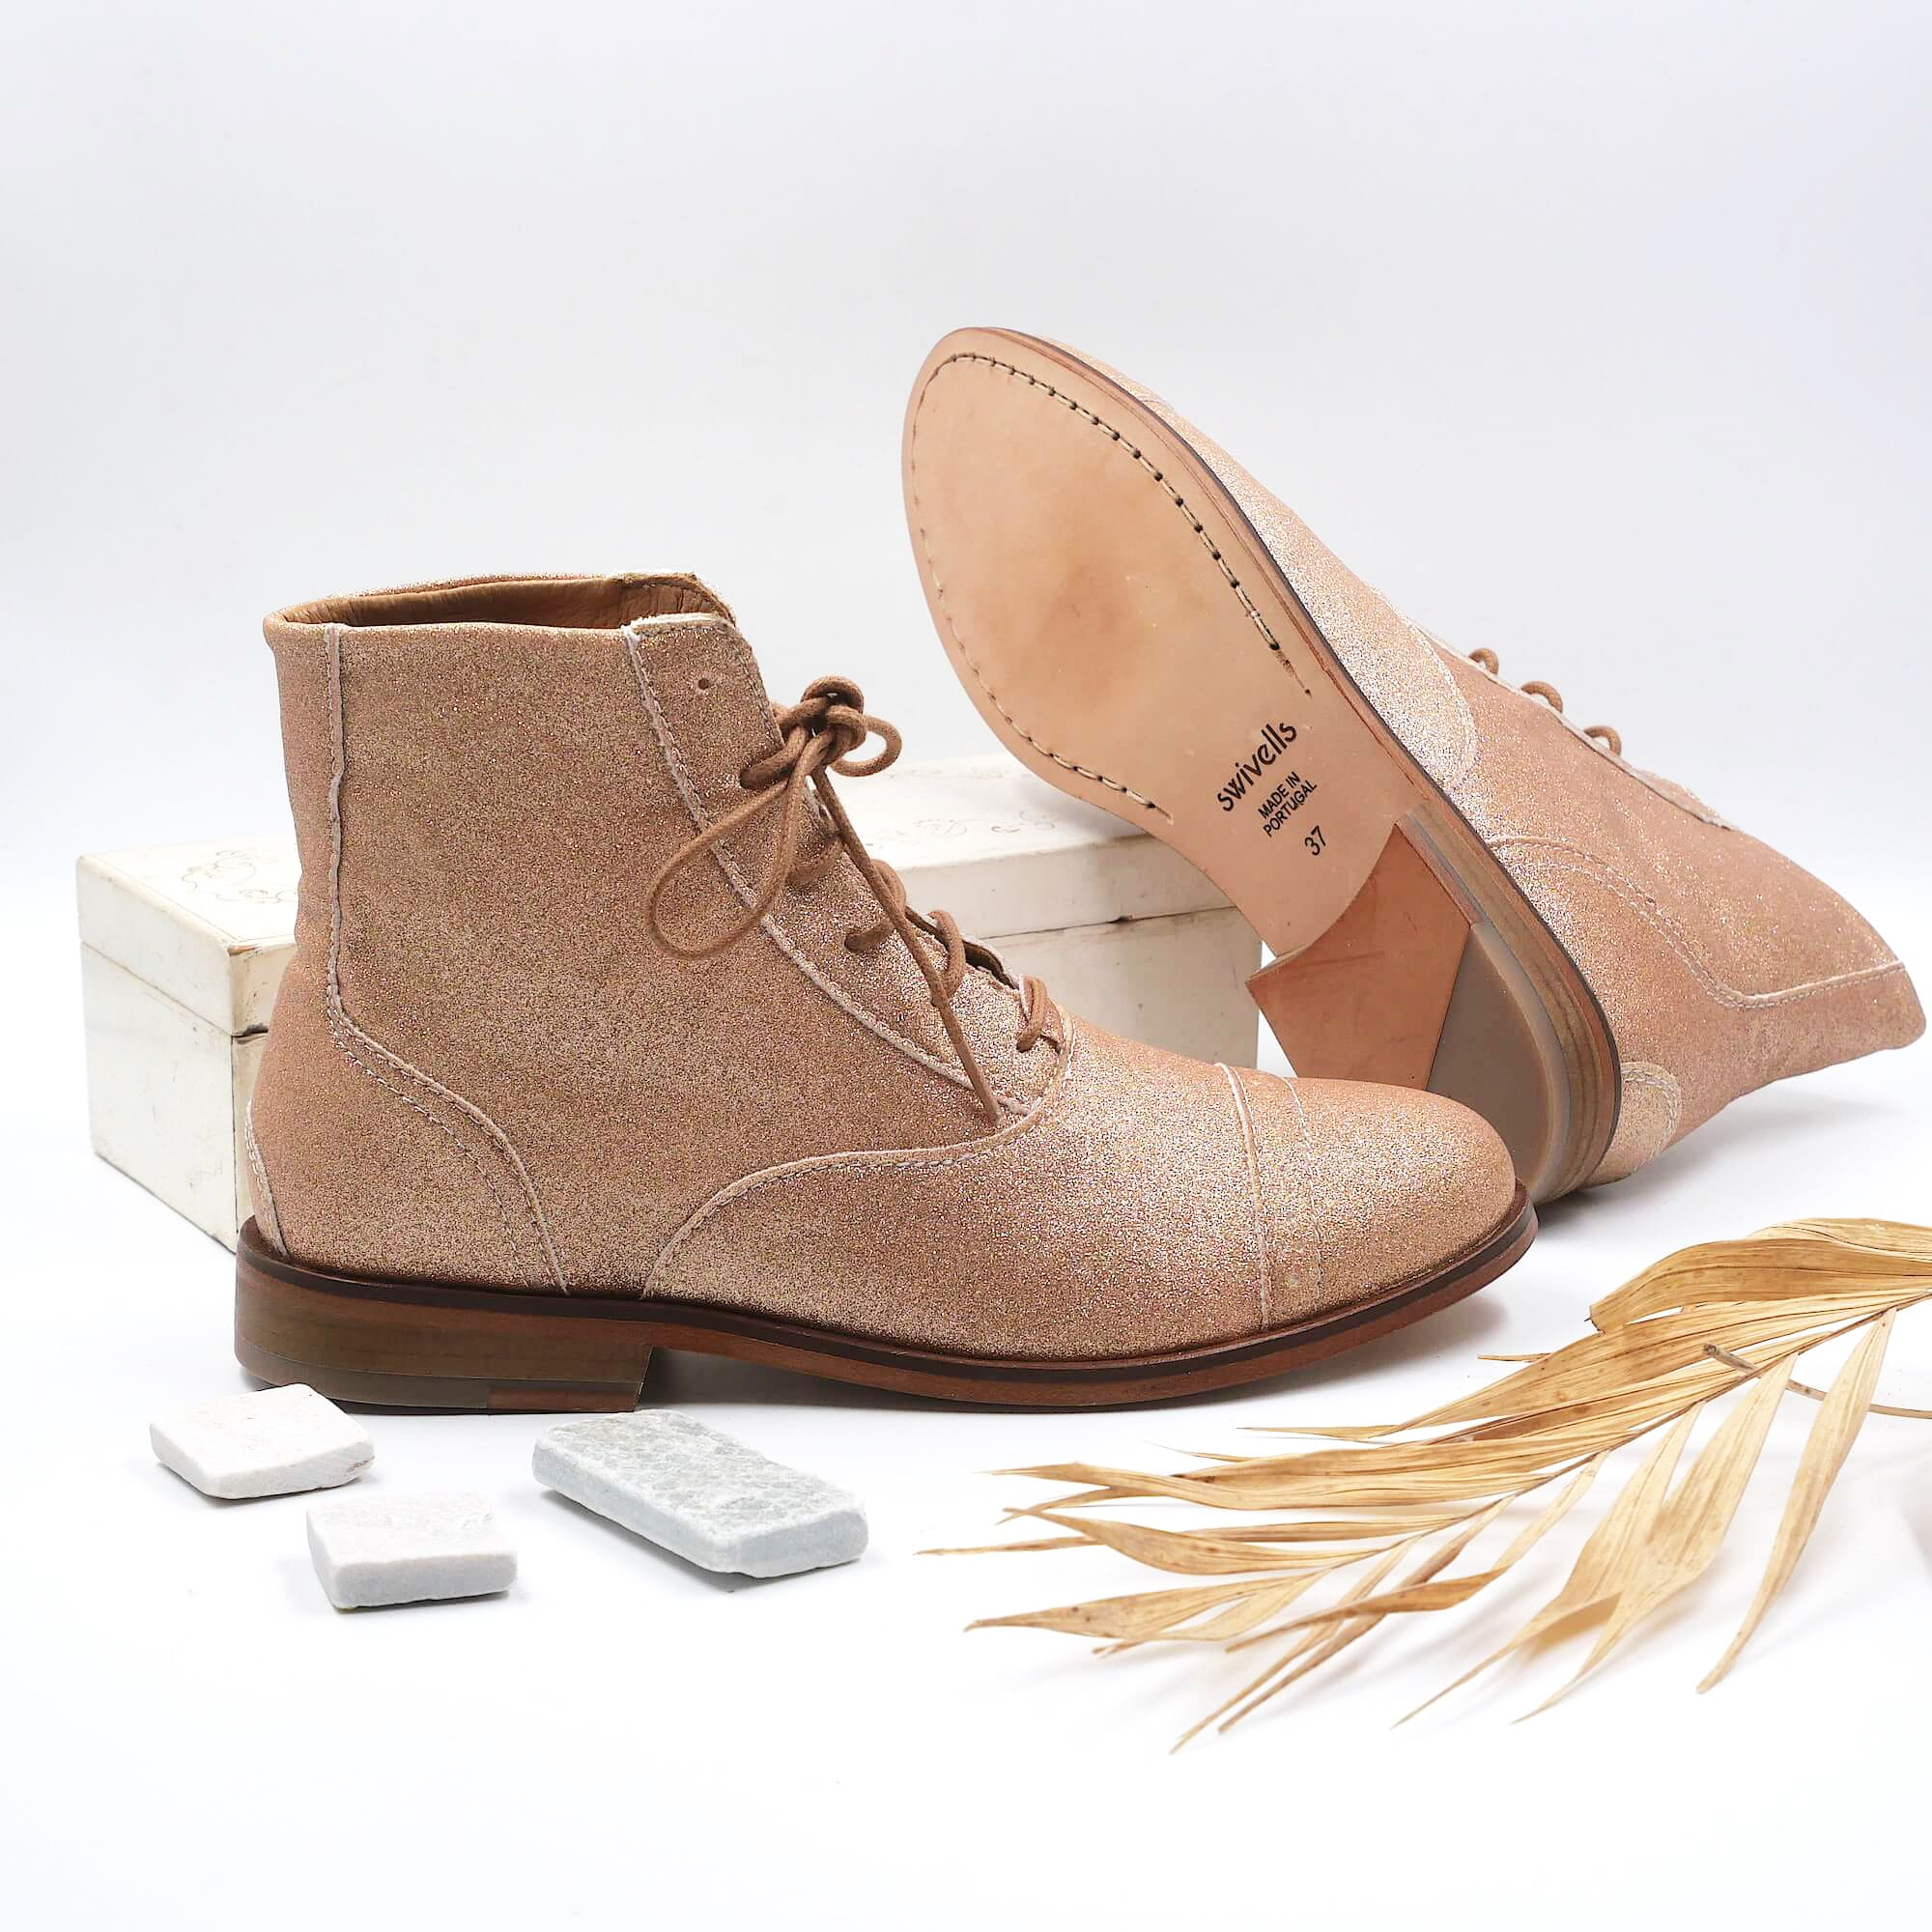 Mama Champagne Champagne rose gold glitter boots picture